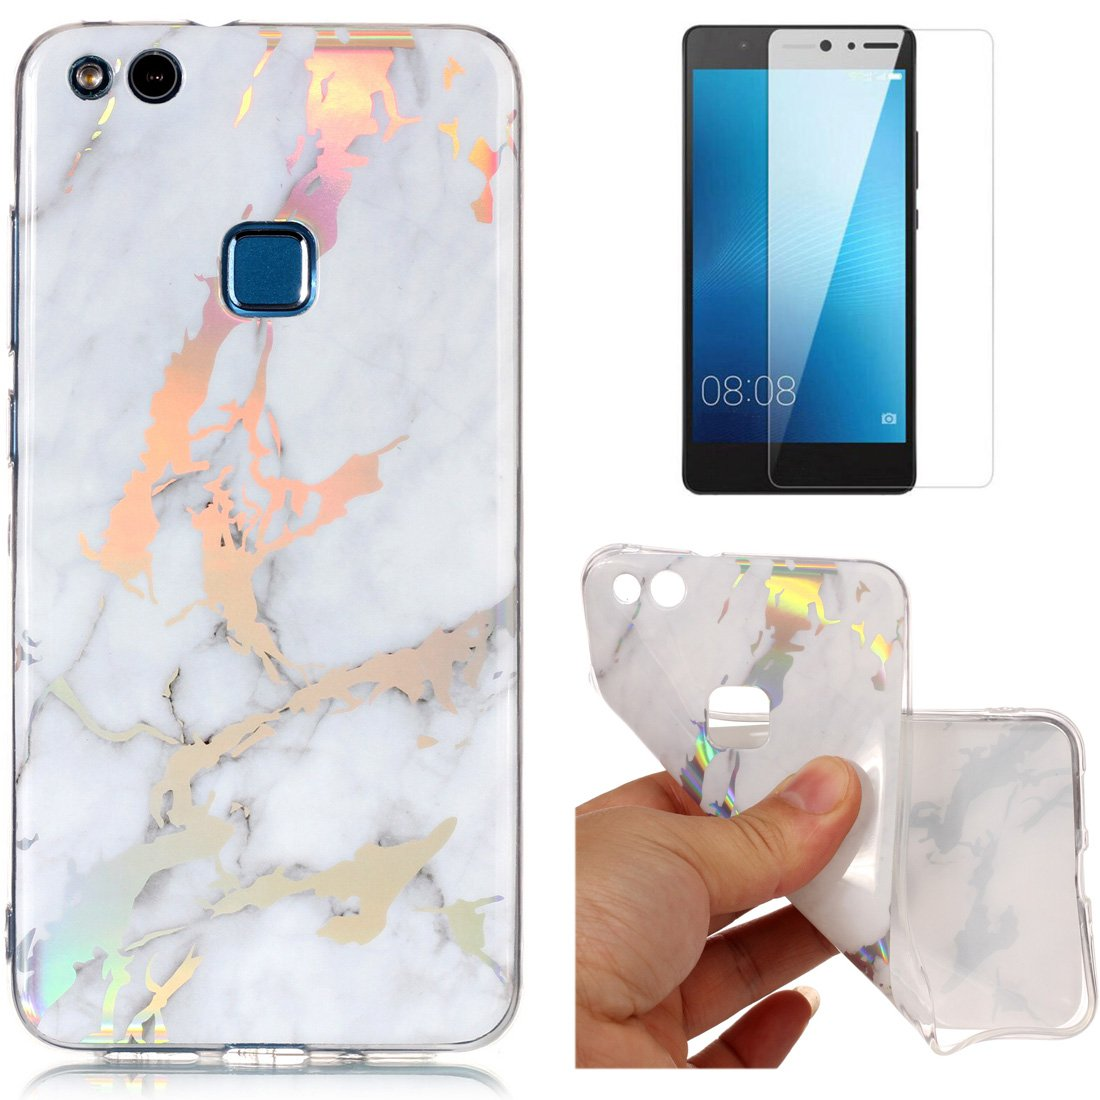 For Huawei P10 Lite Marble Case White, OYIME Unique Luxury Glitter Colorful Plating Pattern Skin Design Clear Silicone Rubber Slim Fit Ultra Thin Protective Back Cover Glossy Soft Gel TPU Shell Shockproof Drop Protection Protective Transparent Bumper and S